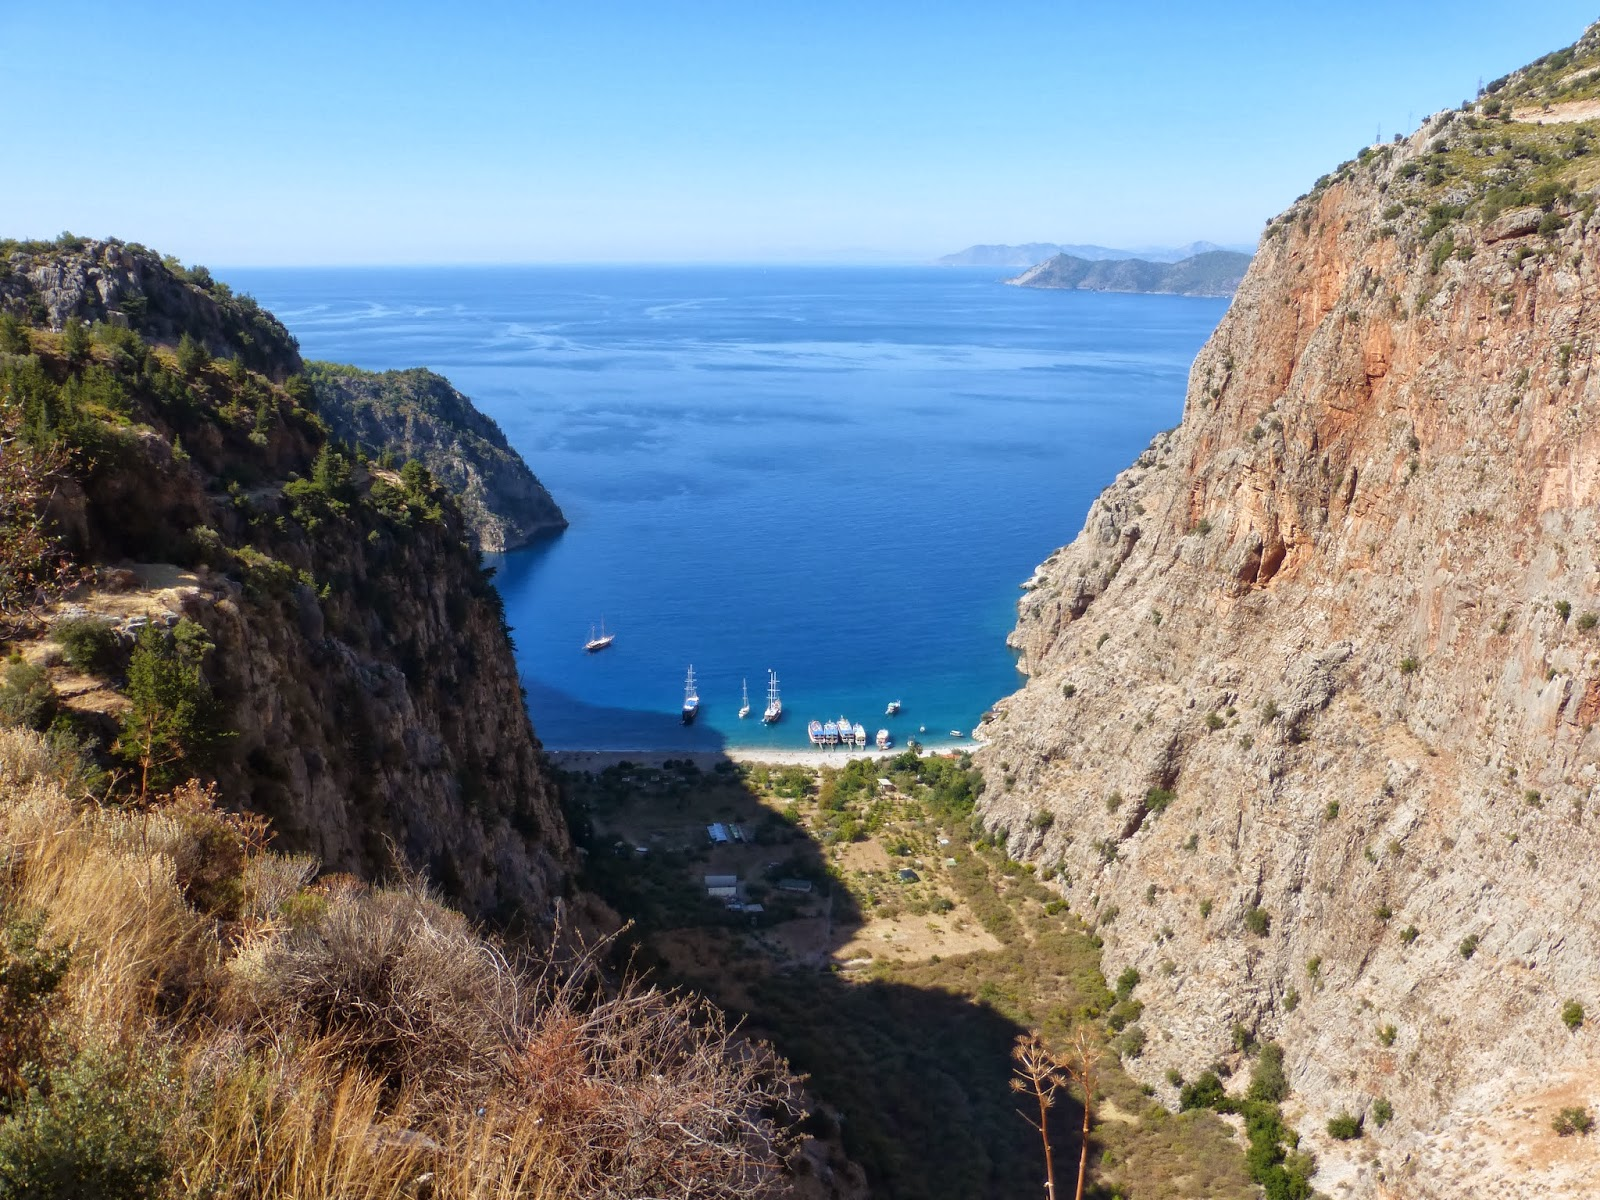 Justus In The World: Butterfly Valley Hike